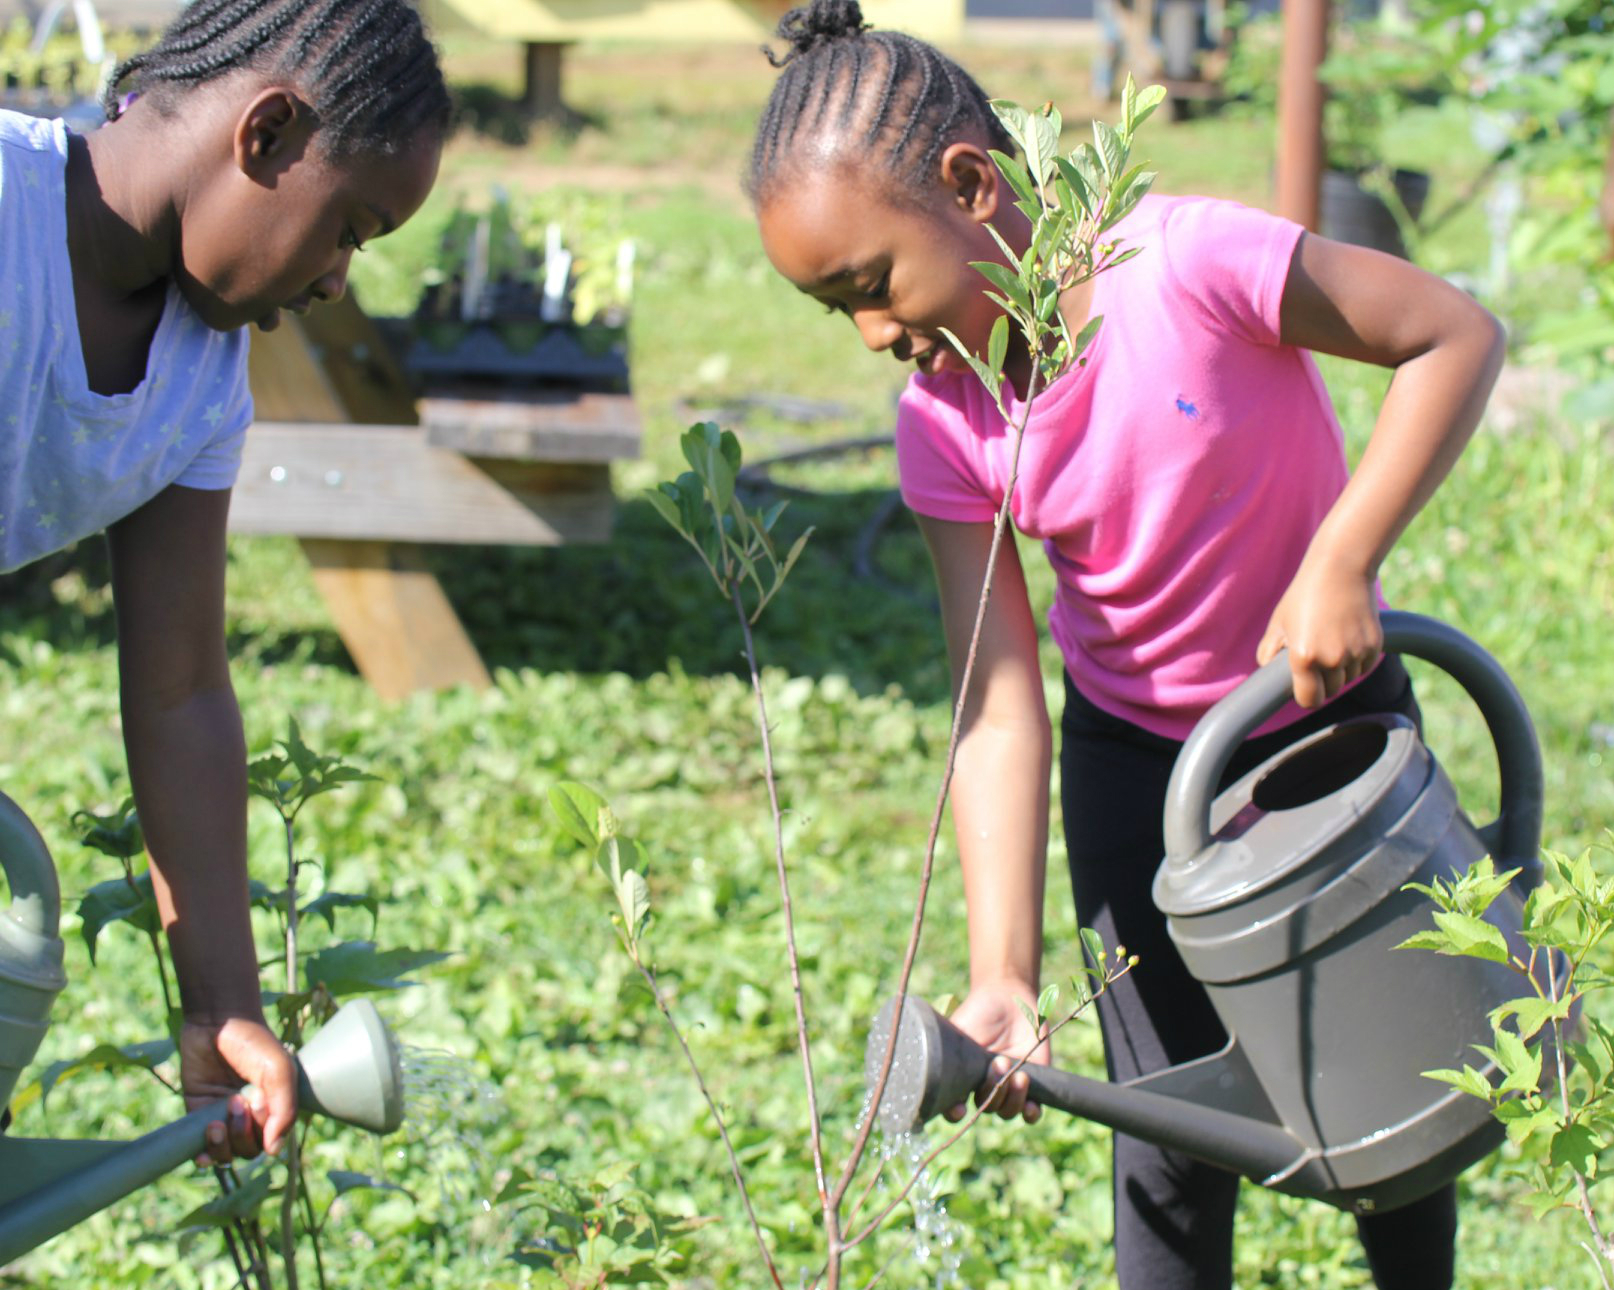 IMAGE DESCRIPTION:  Two children using watering cans on plants at Beardsley Farm.